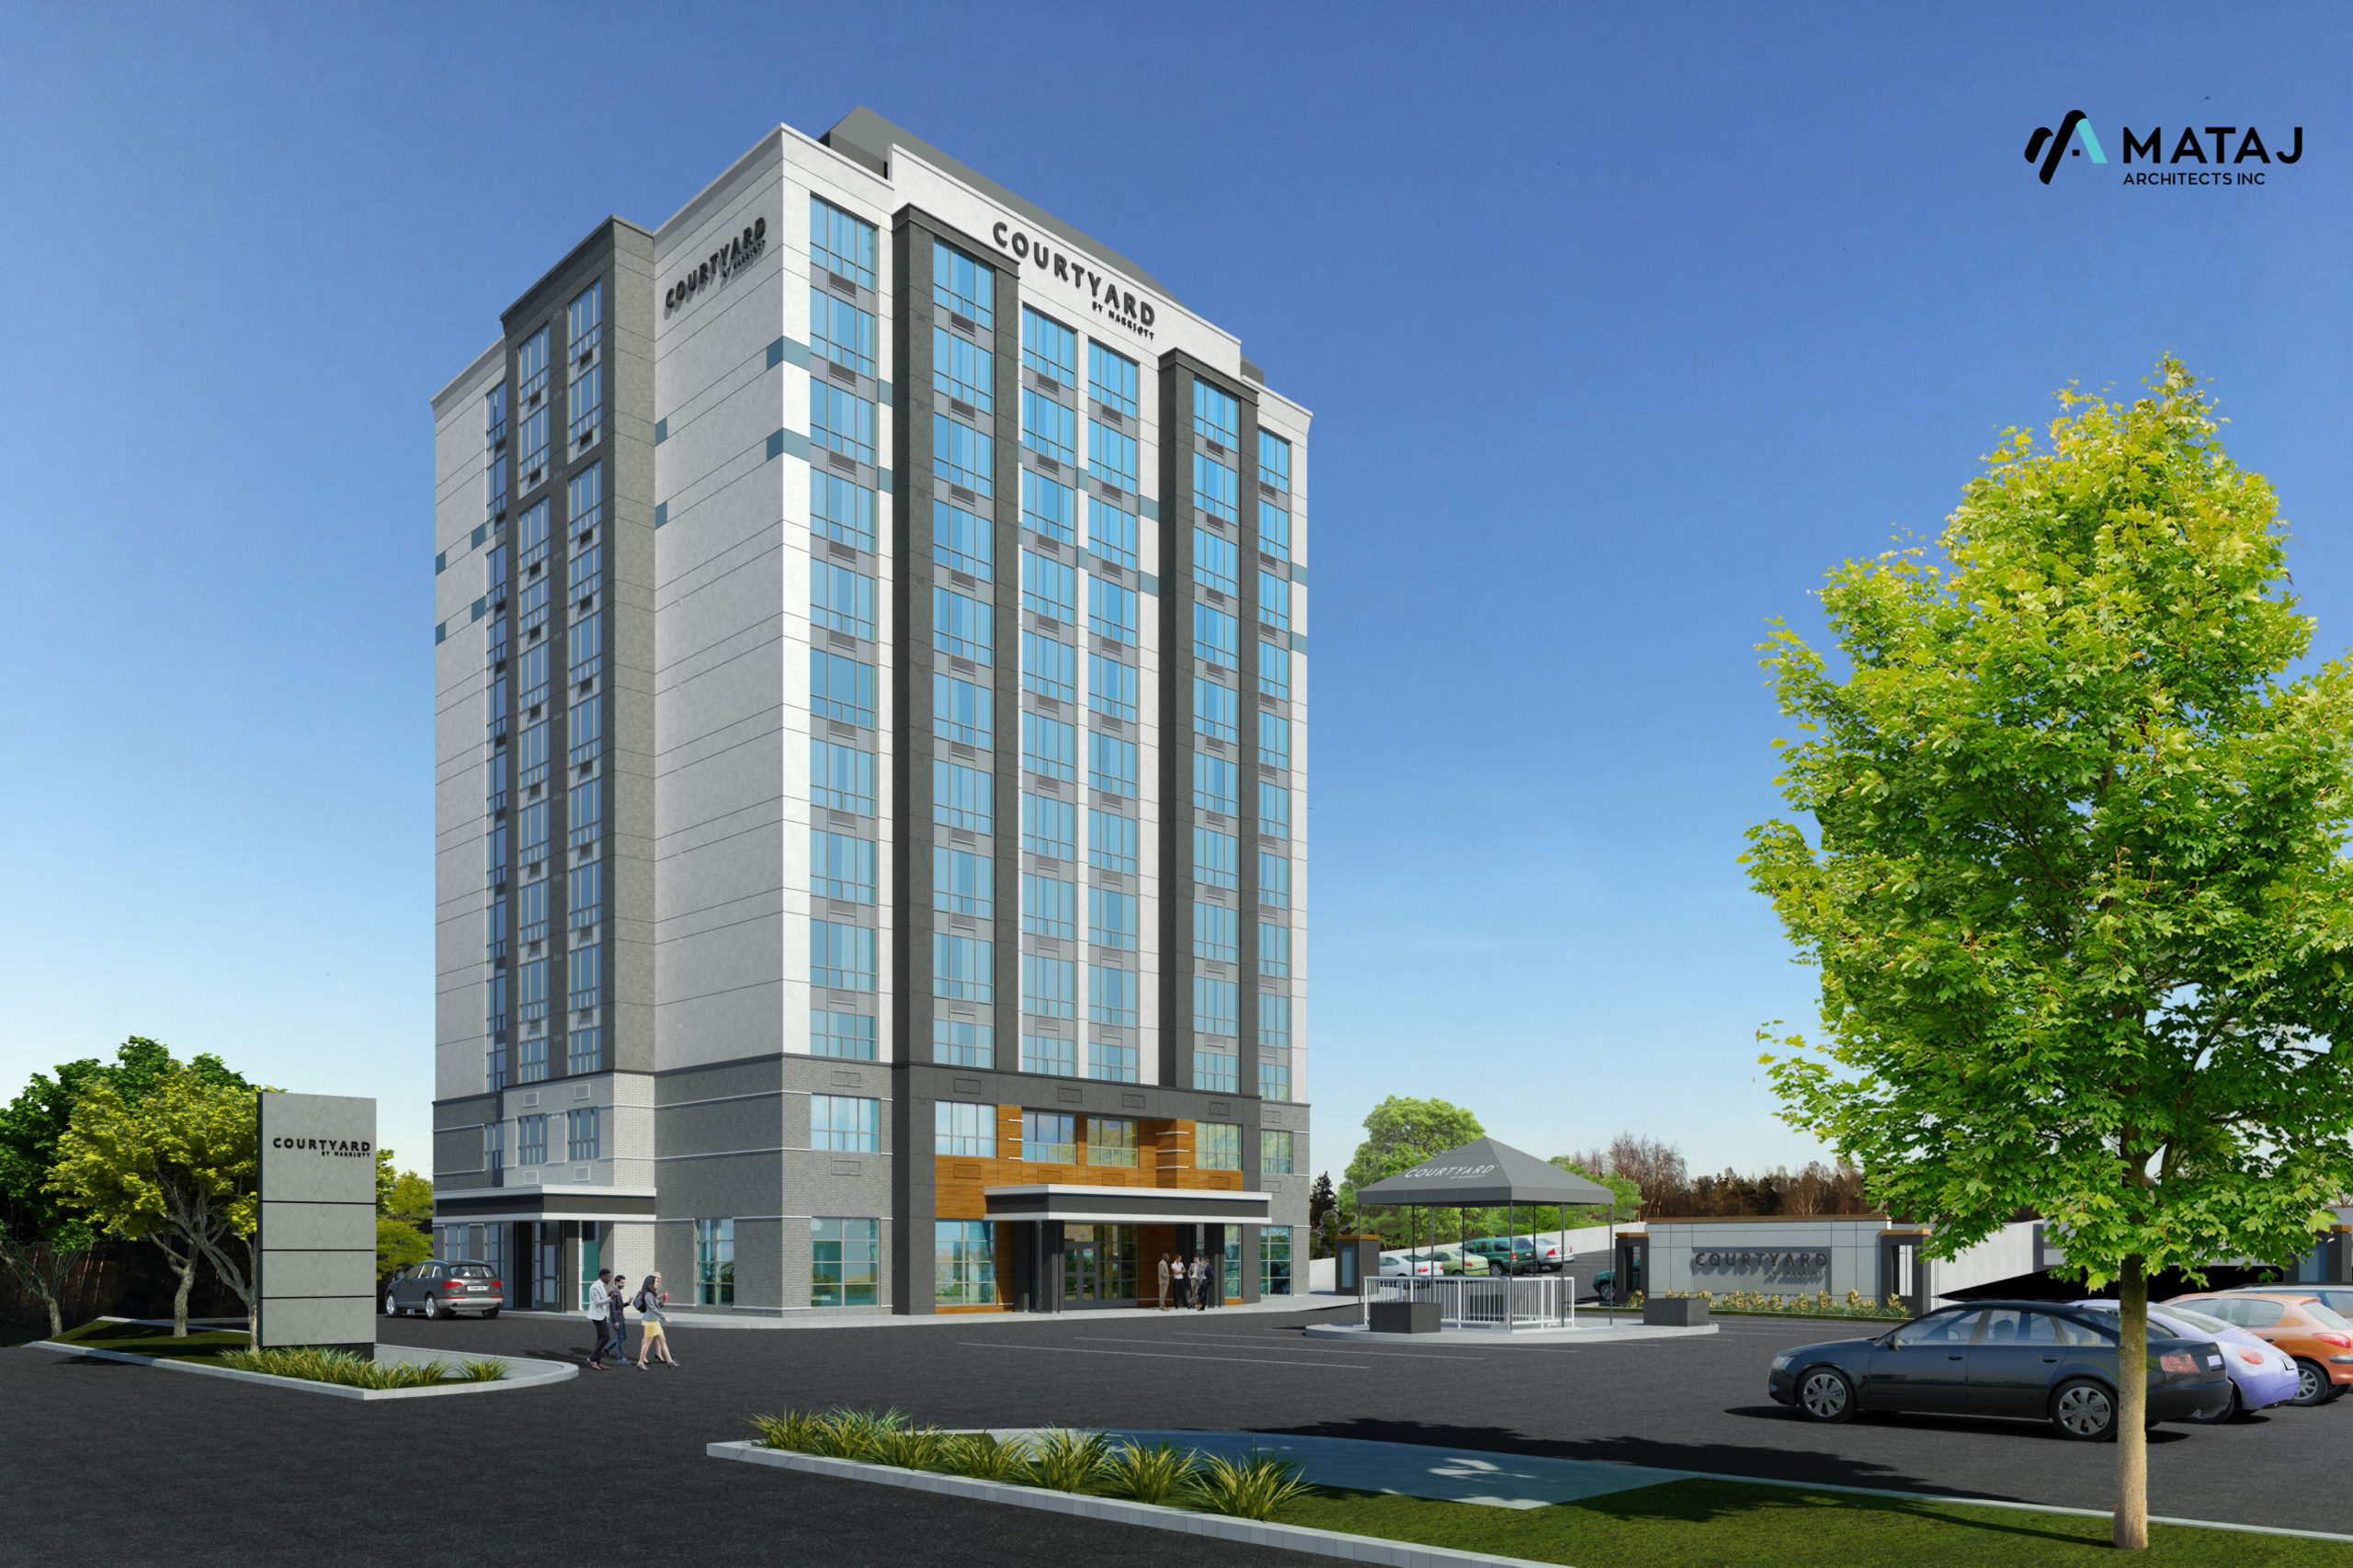 Kitchener Courtyard by Marriott conversion